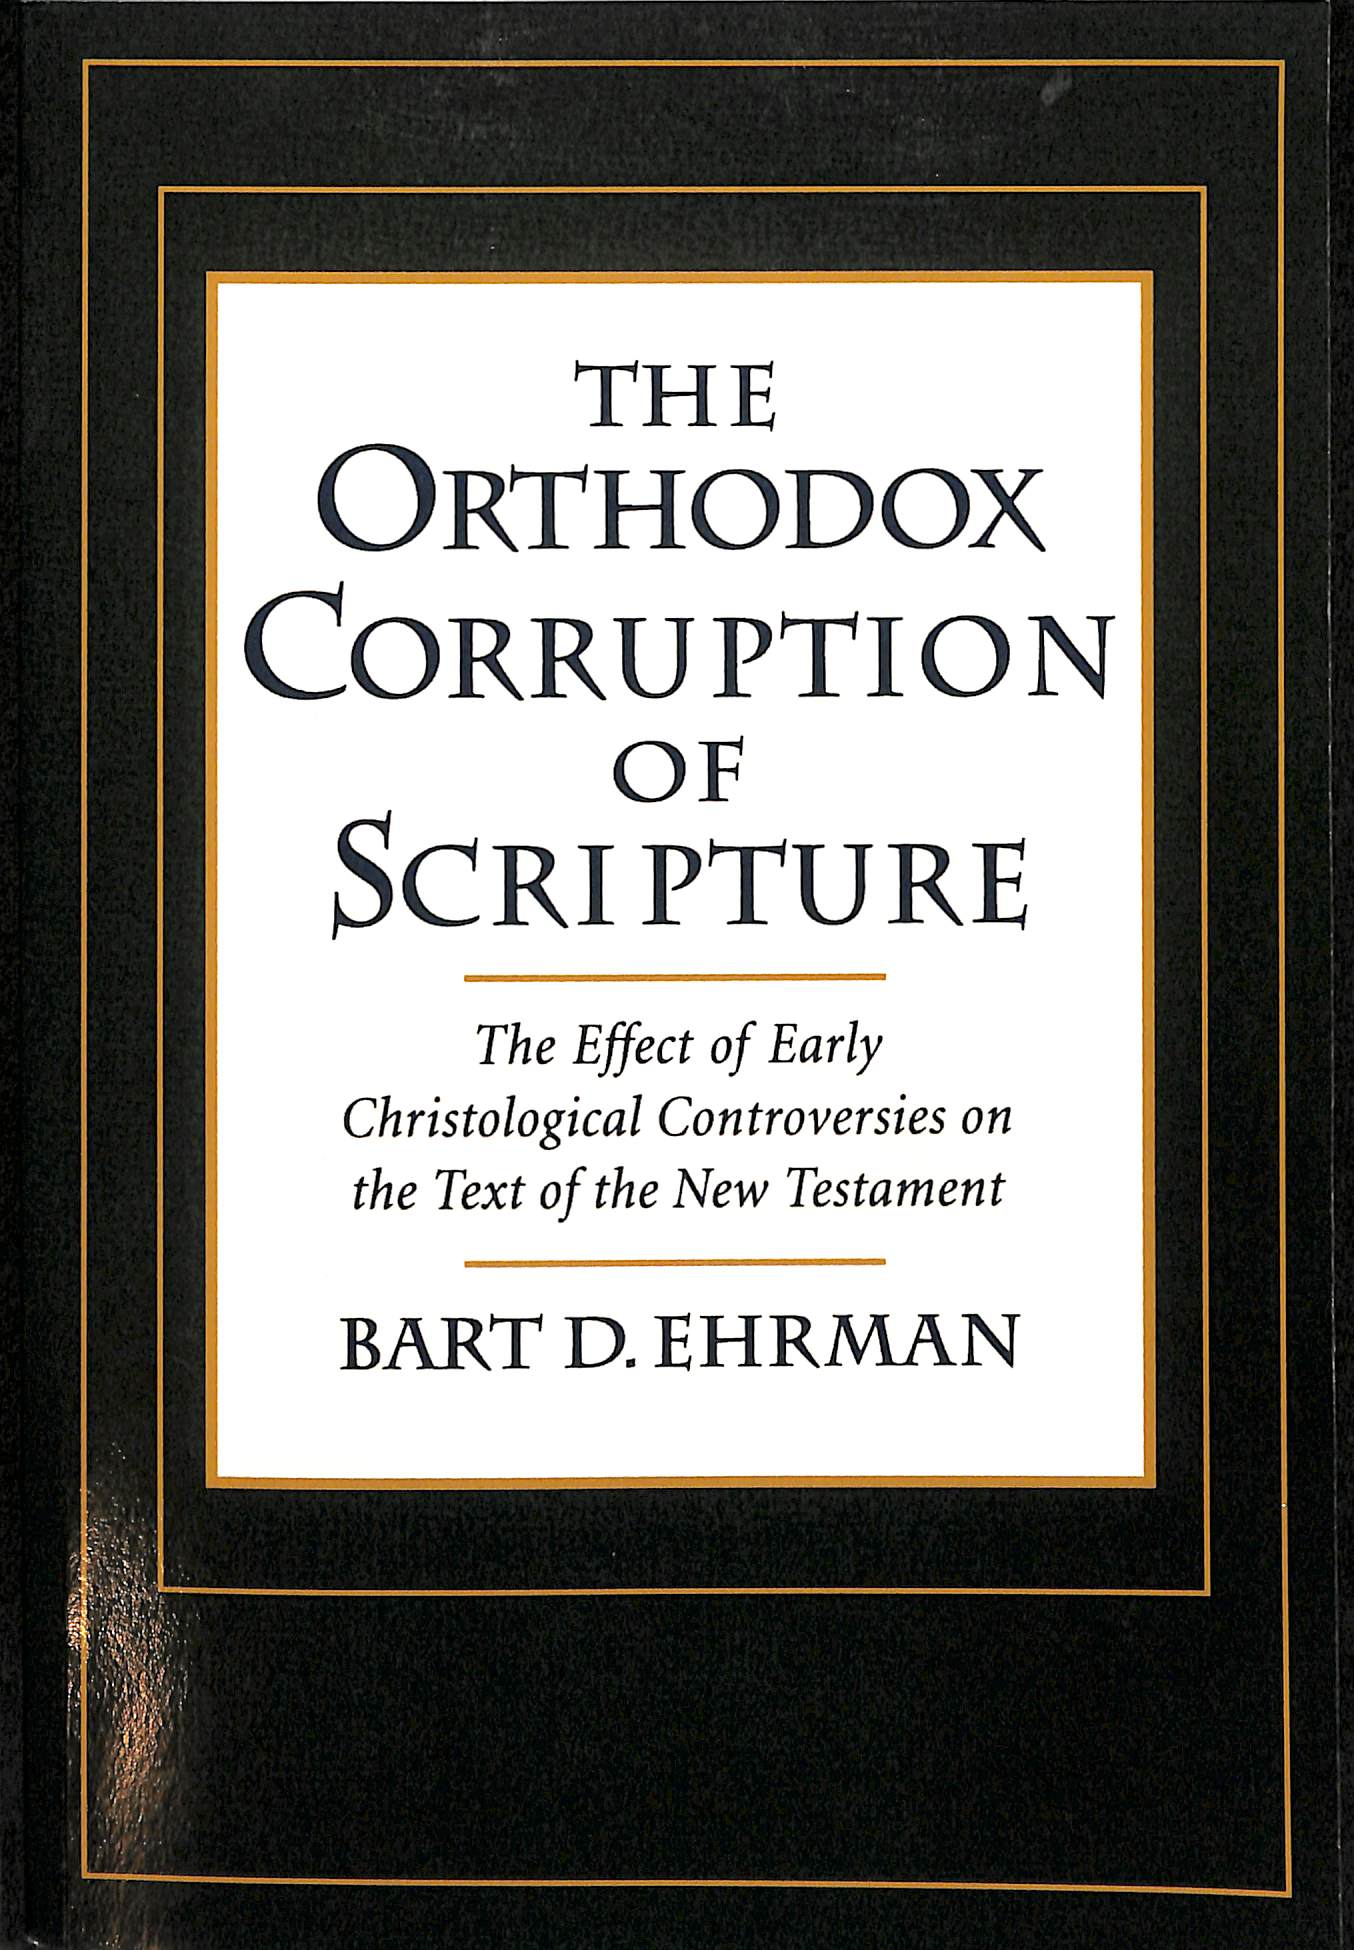 The Orthodox Corruption of Scripture (2e hands)